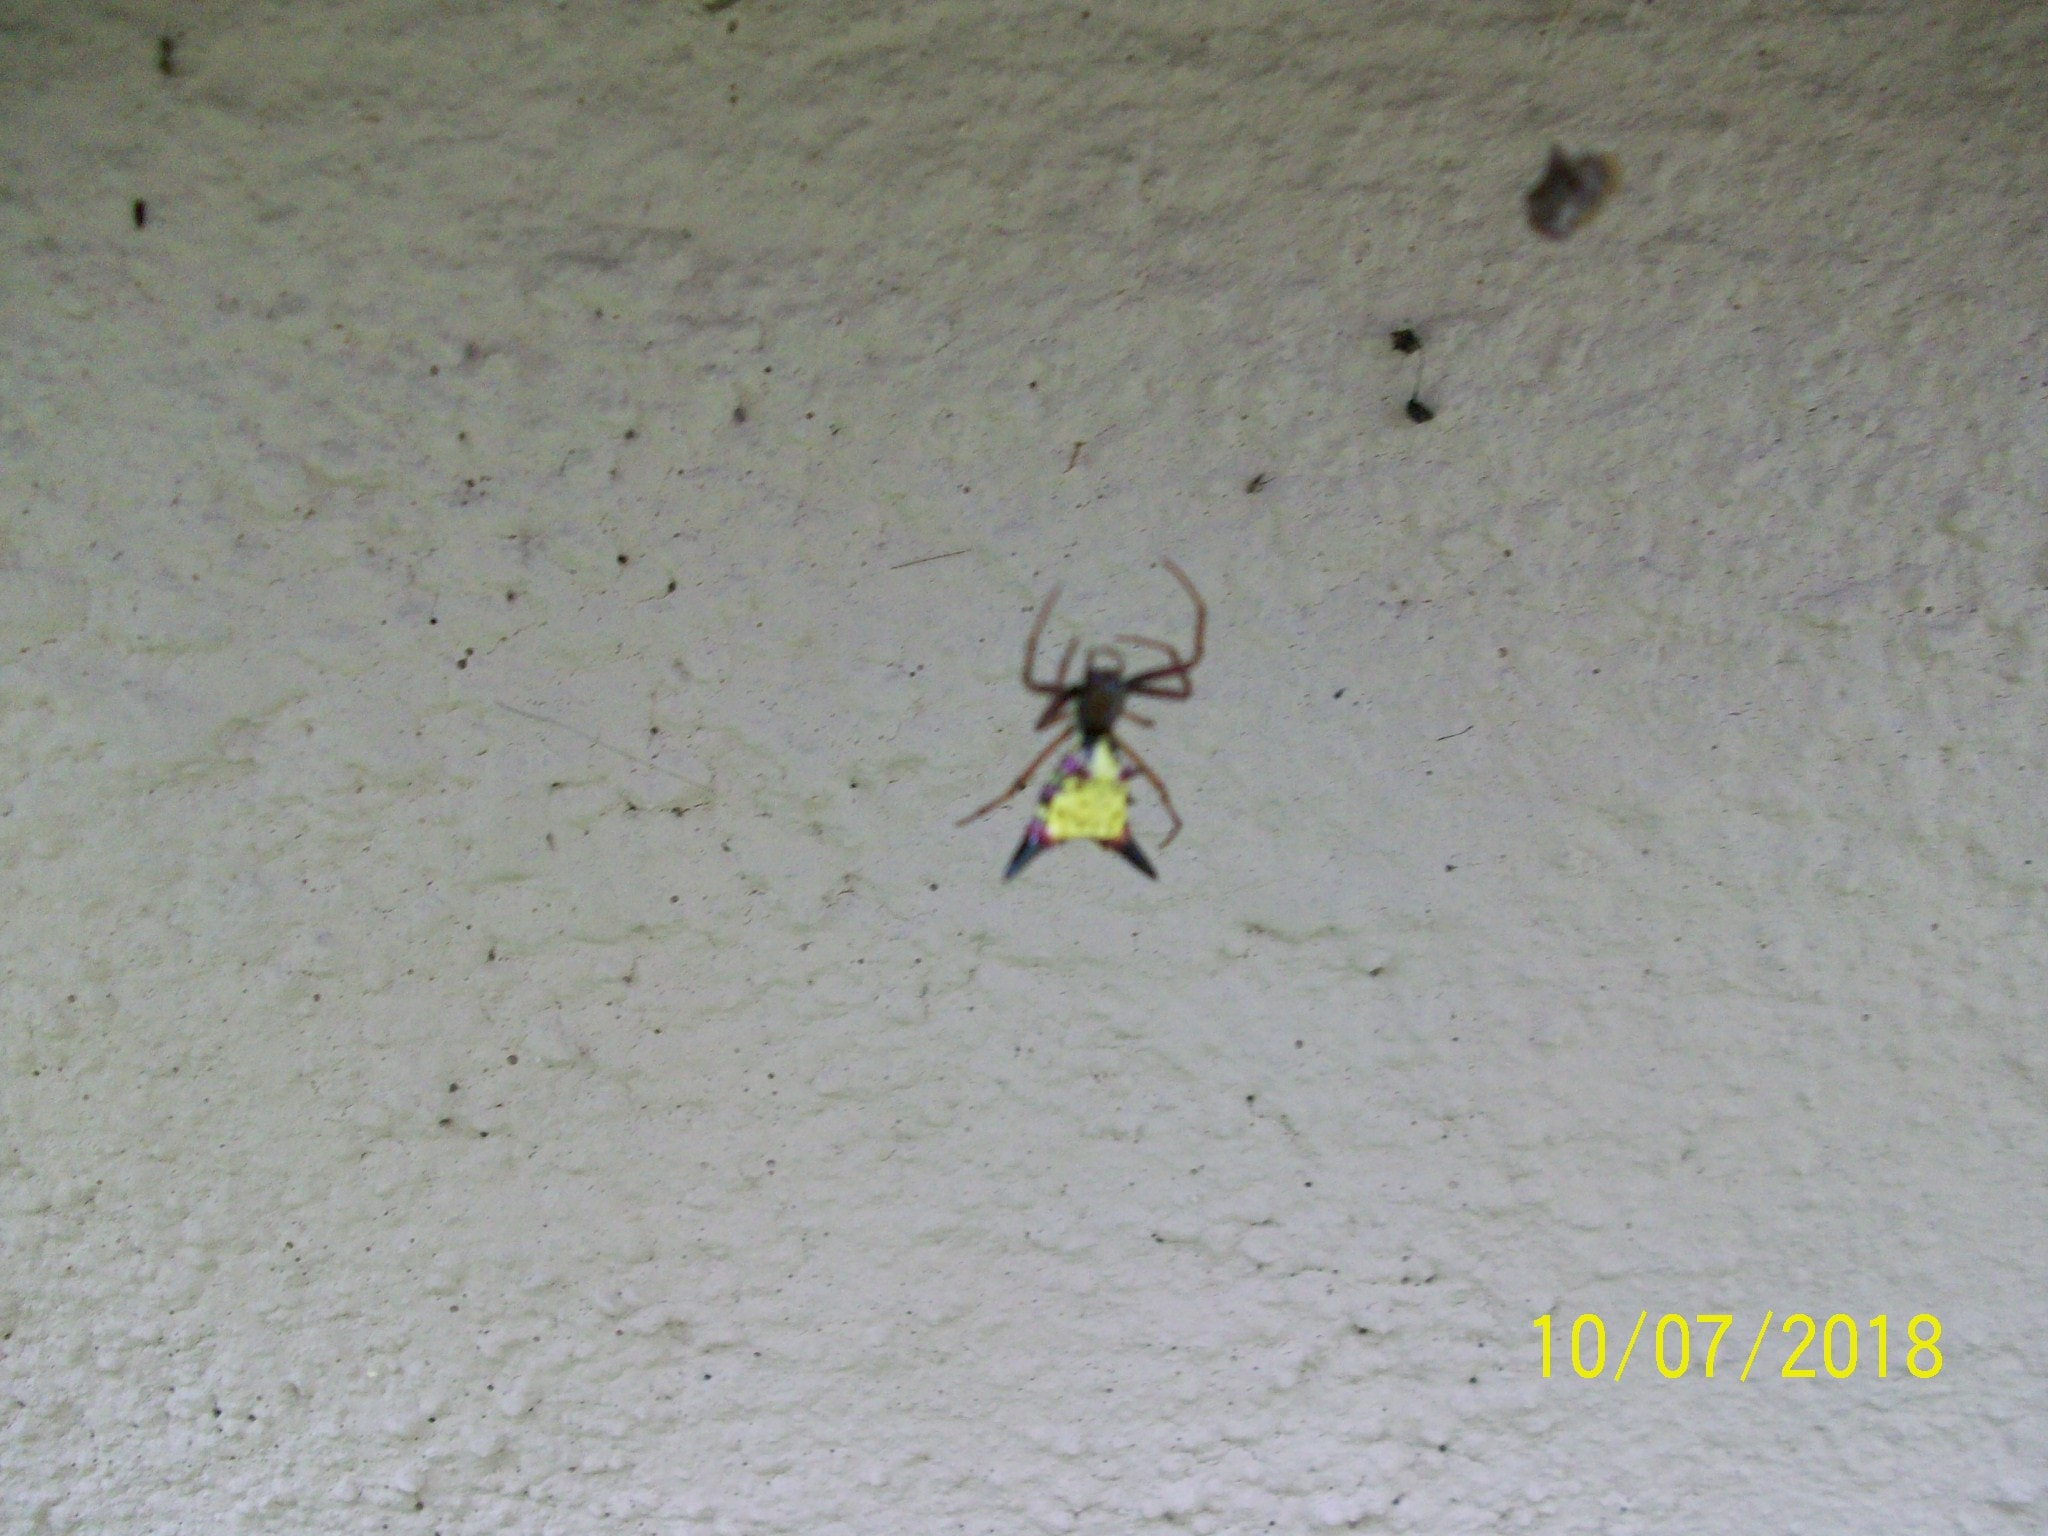 Picture of Micrathena sagittata (Arrow-shaped Micrathena) - Dorsal